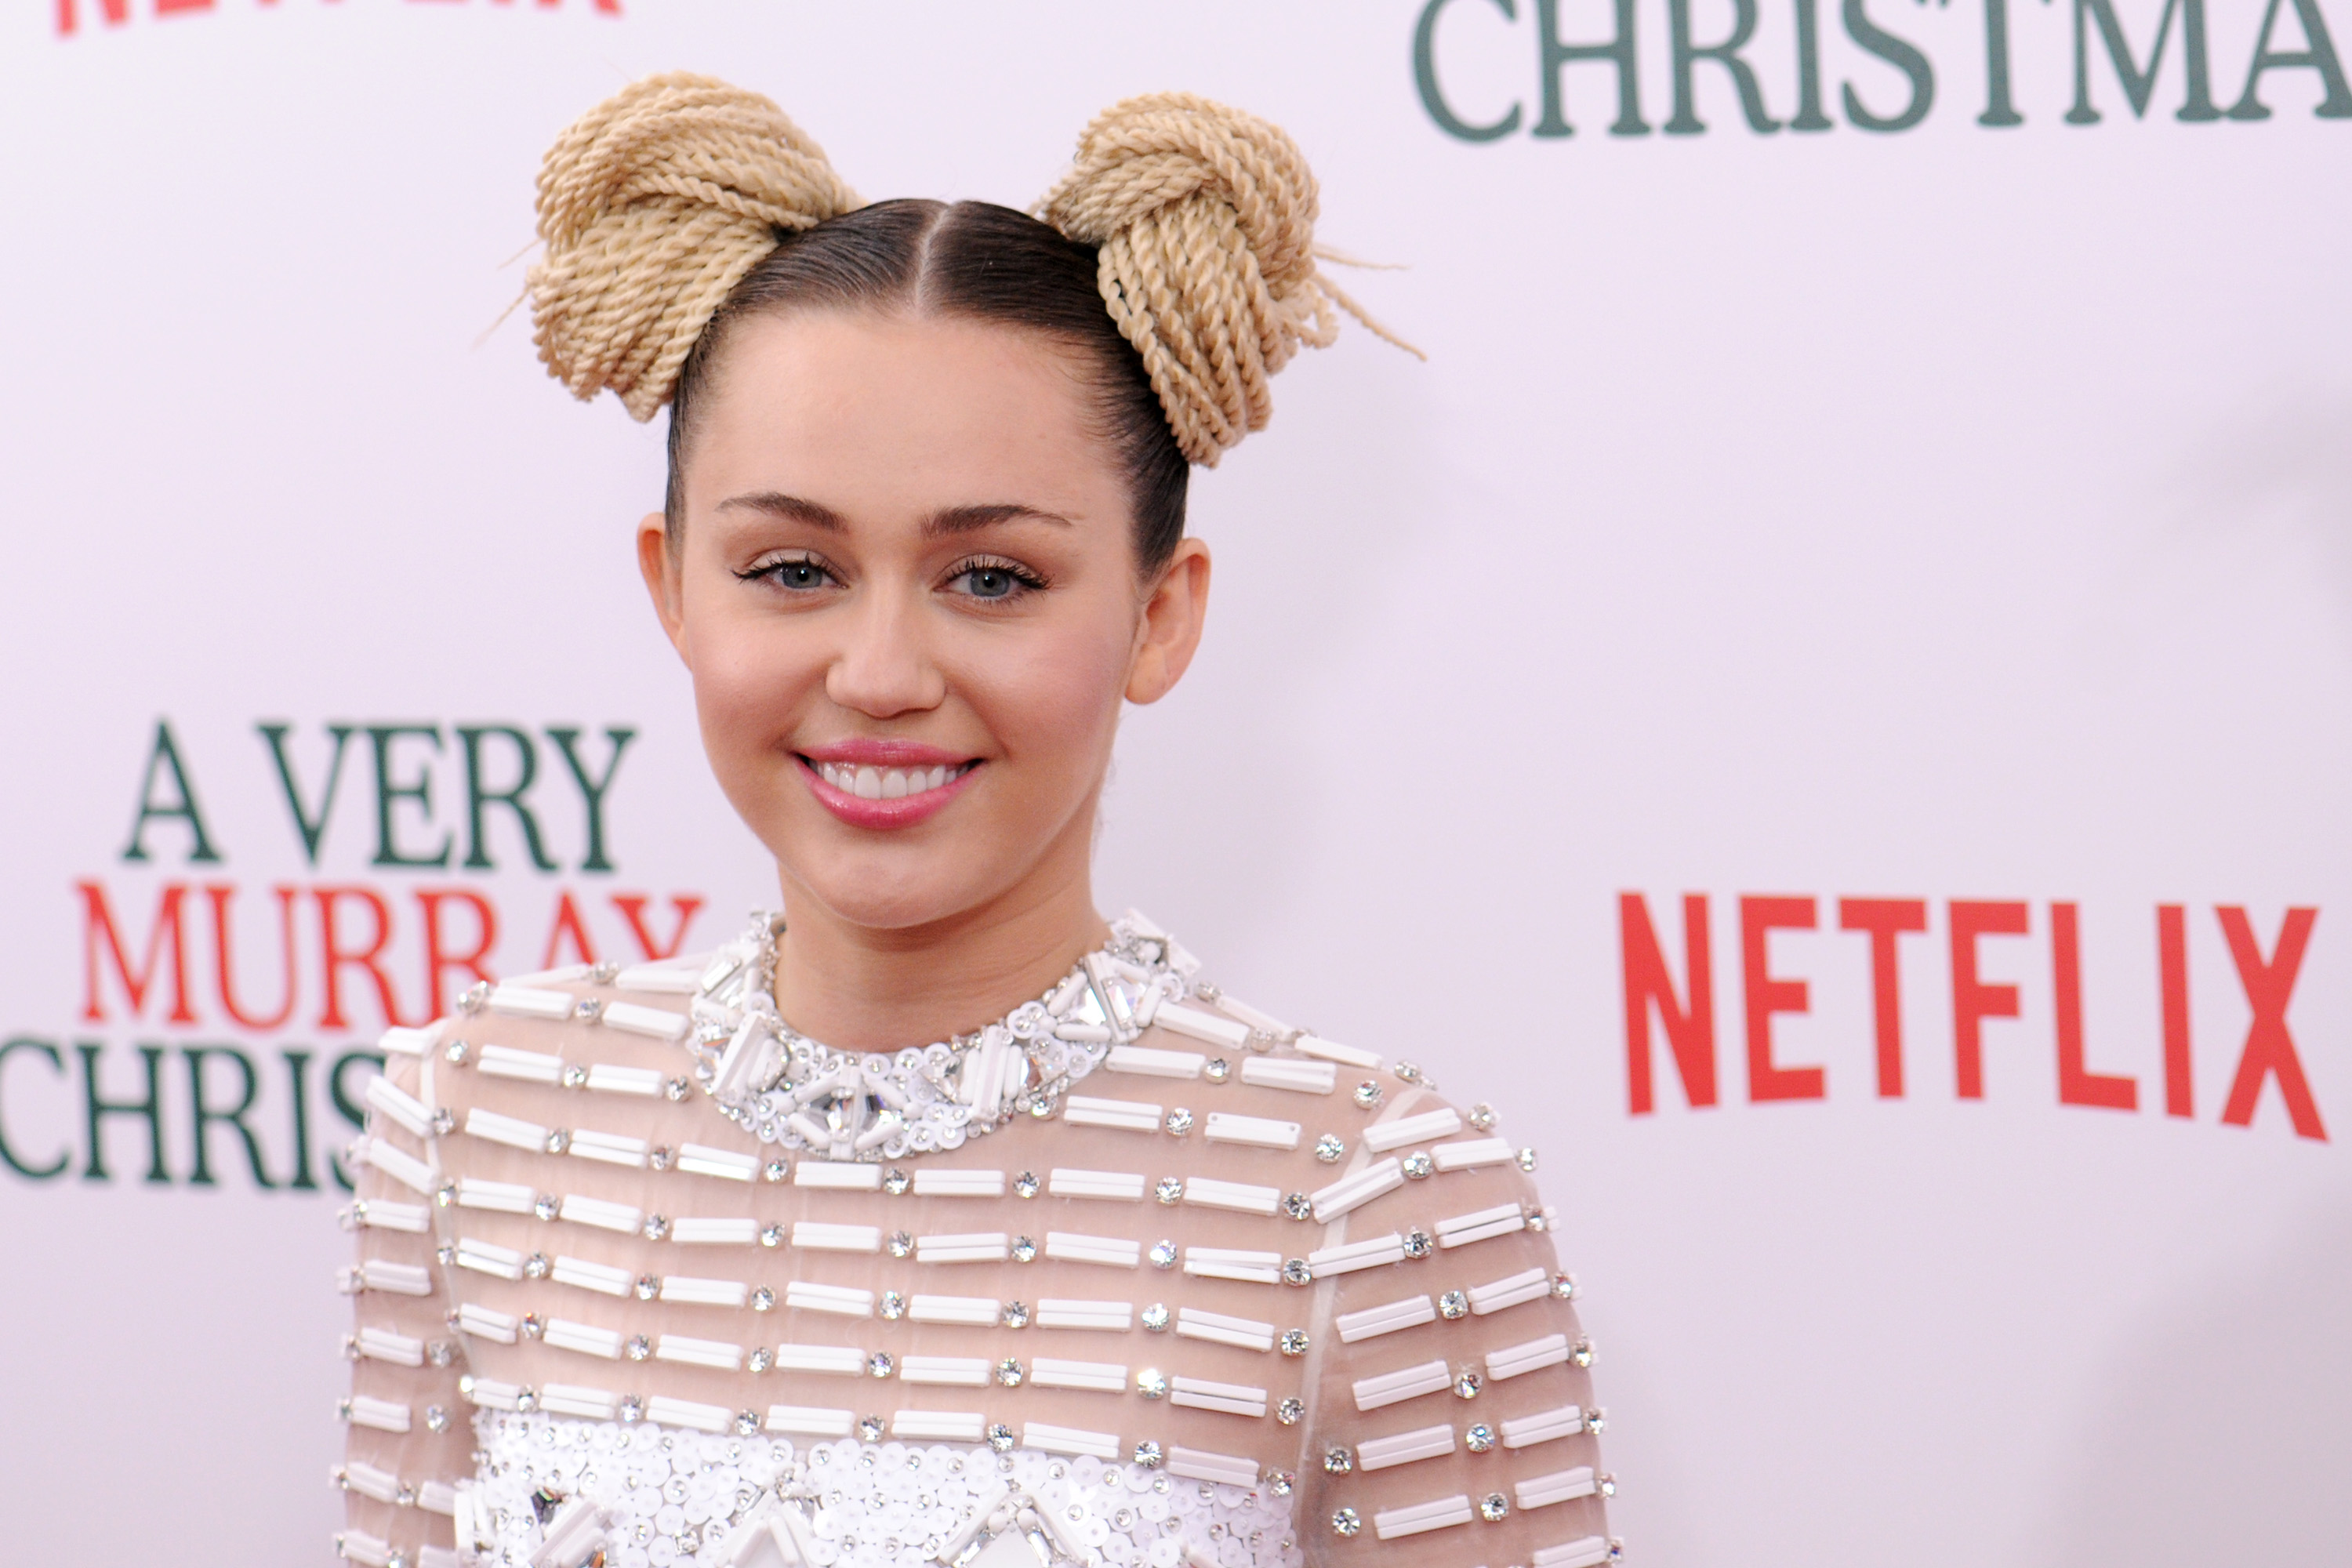 Here are 15 life lessons we've learned from the funny, beautiful, and super talented Miley Cyrus. (Photo: WENN)